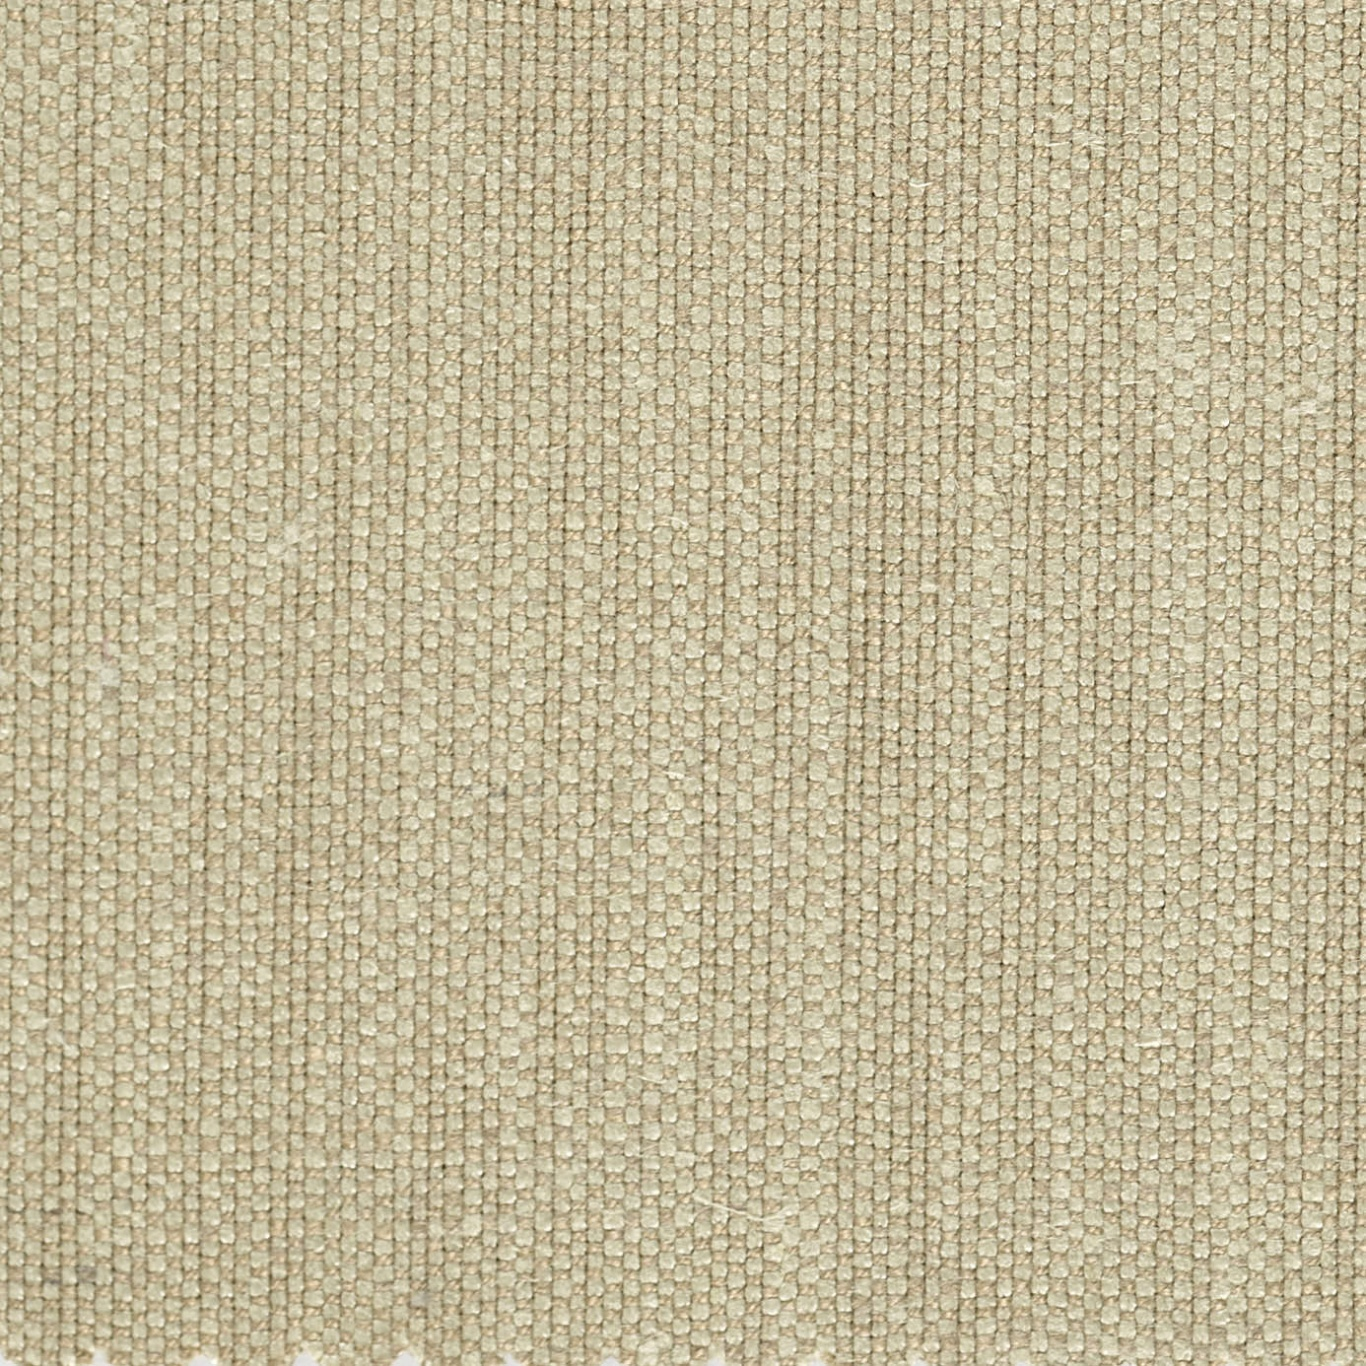 Image of Harlequin Atom Wheat Fabric 440328